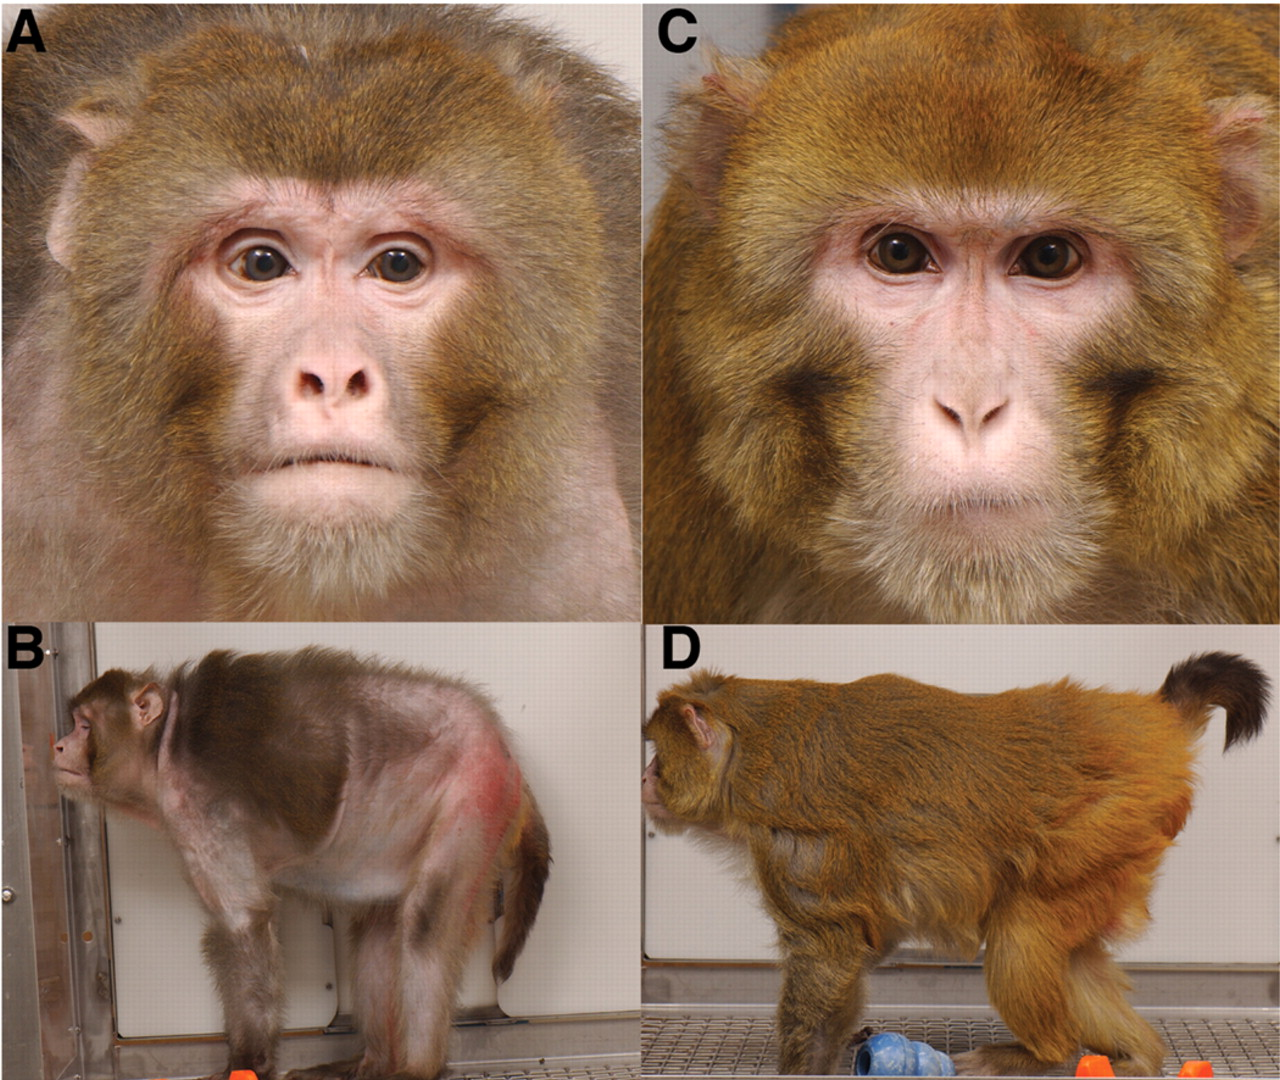 A/B is the monkey eating a standard diet. C/D is the monkey that has been put on calorie restriction. As you can tell, the monkey on calorie restriction looks much younger and is also expected to live longer